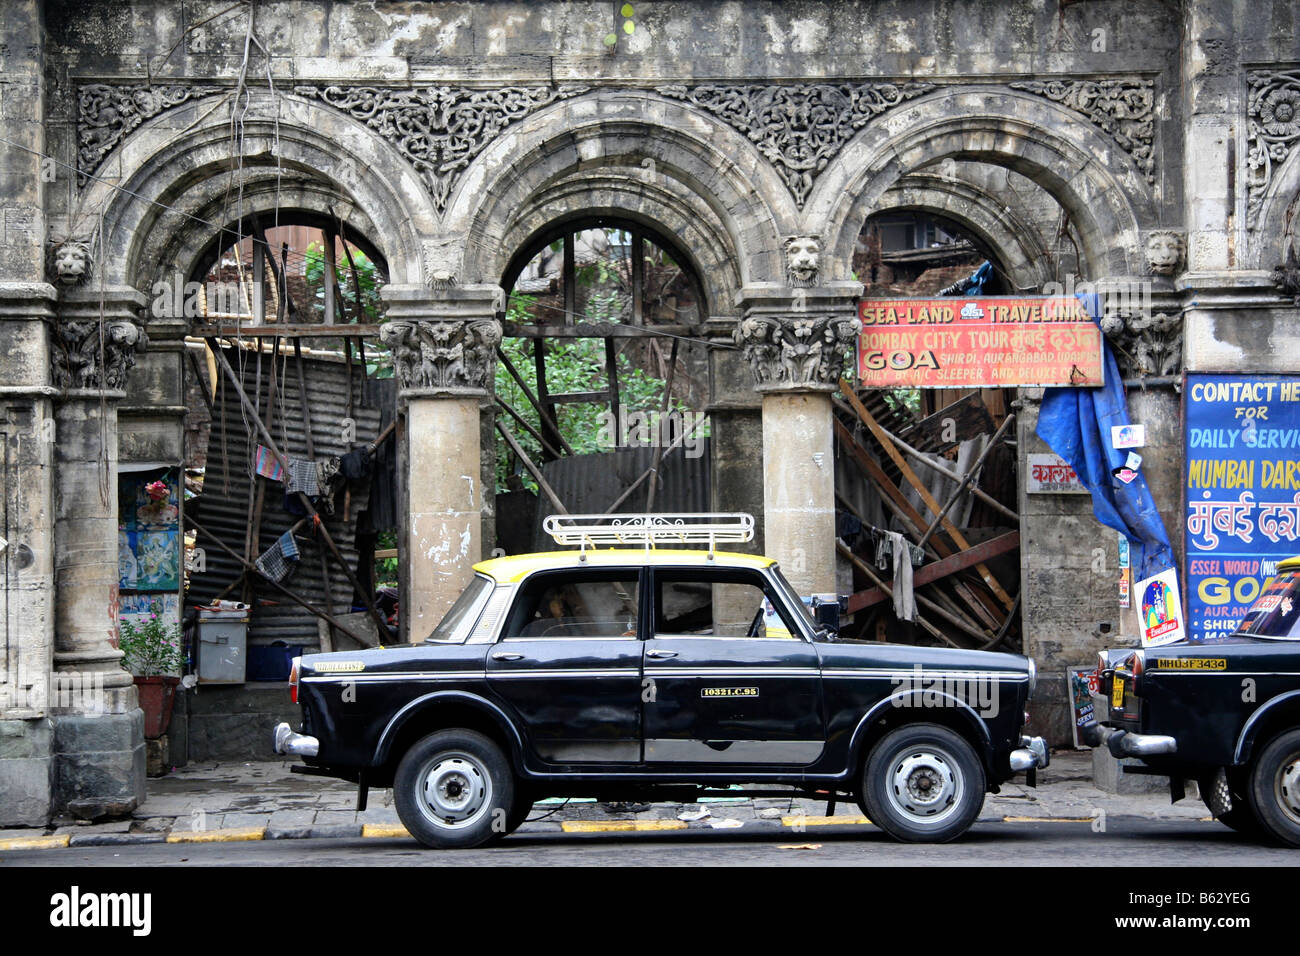 An Ambassador taxi parks on a plot of land being redeveloped next to the Taj Mahal Hotel in Mumbai, India. - Stock Image